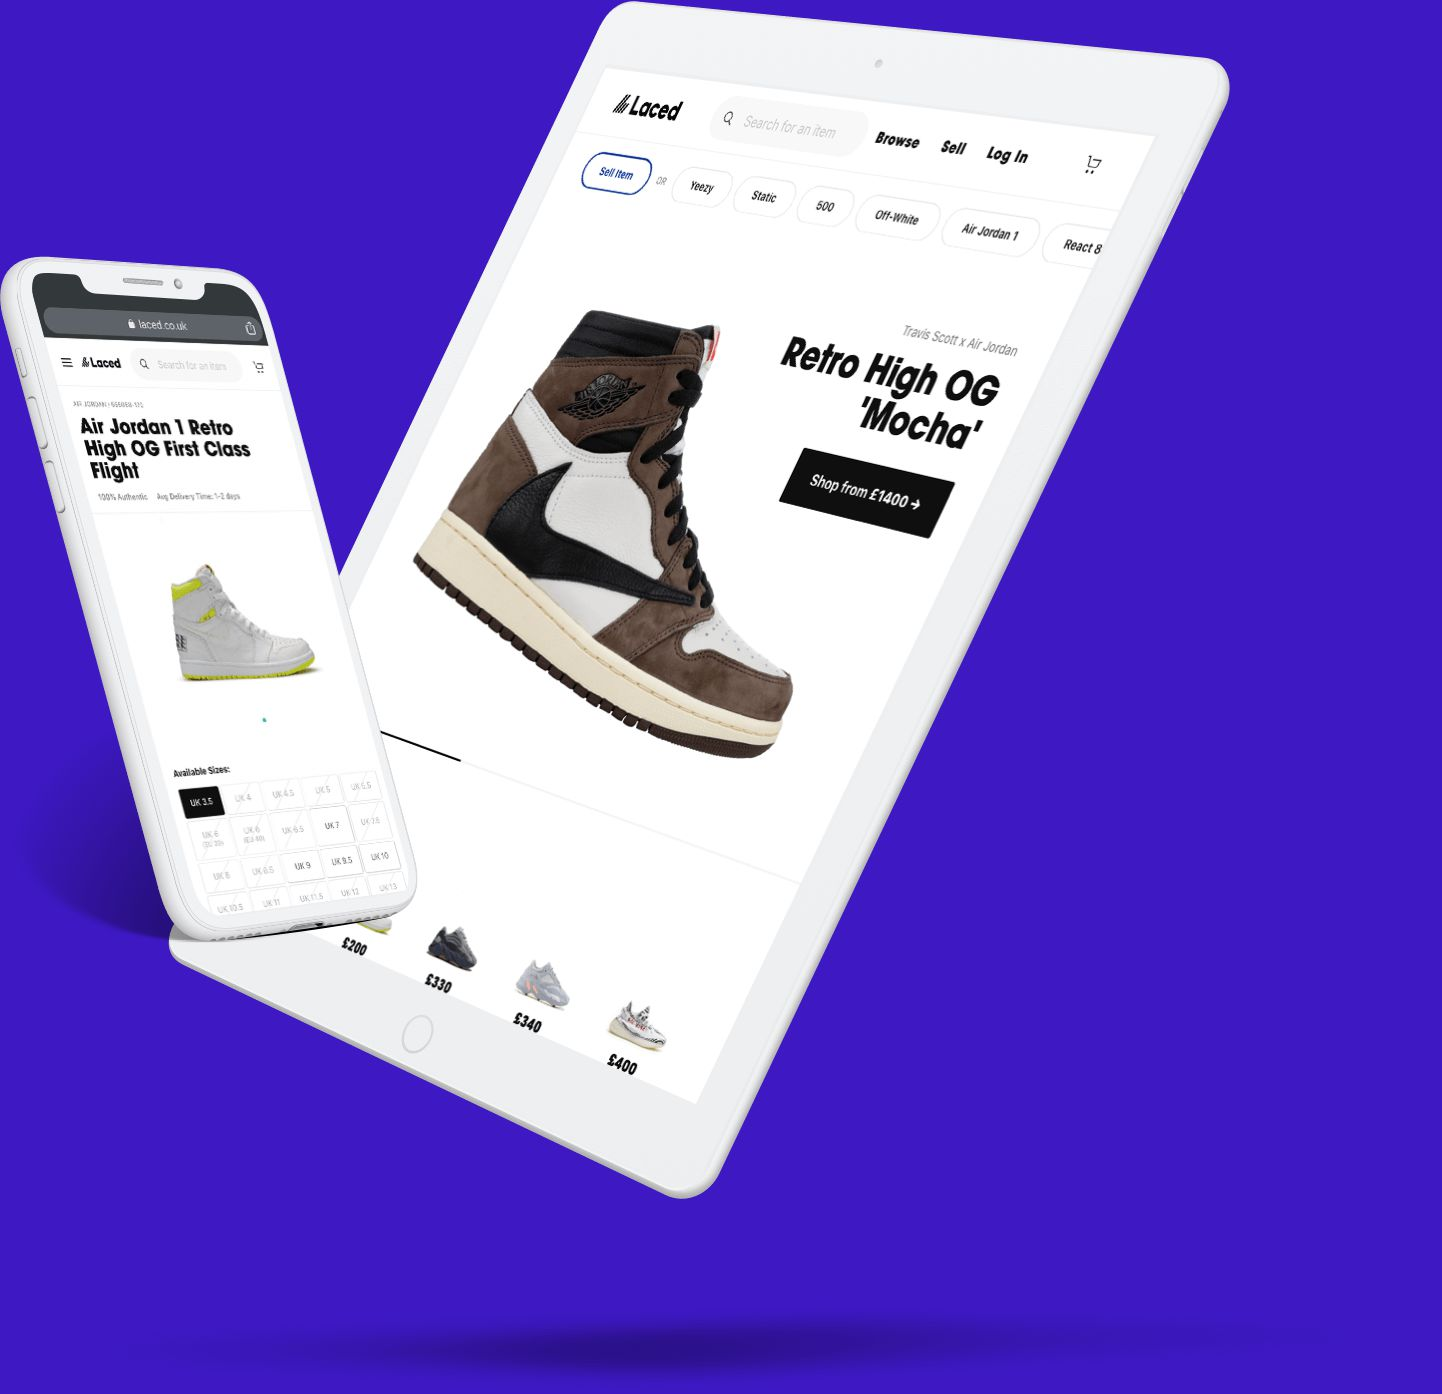 Laced's sneaker trading website shown on a tablet and mobile device.